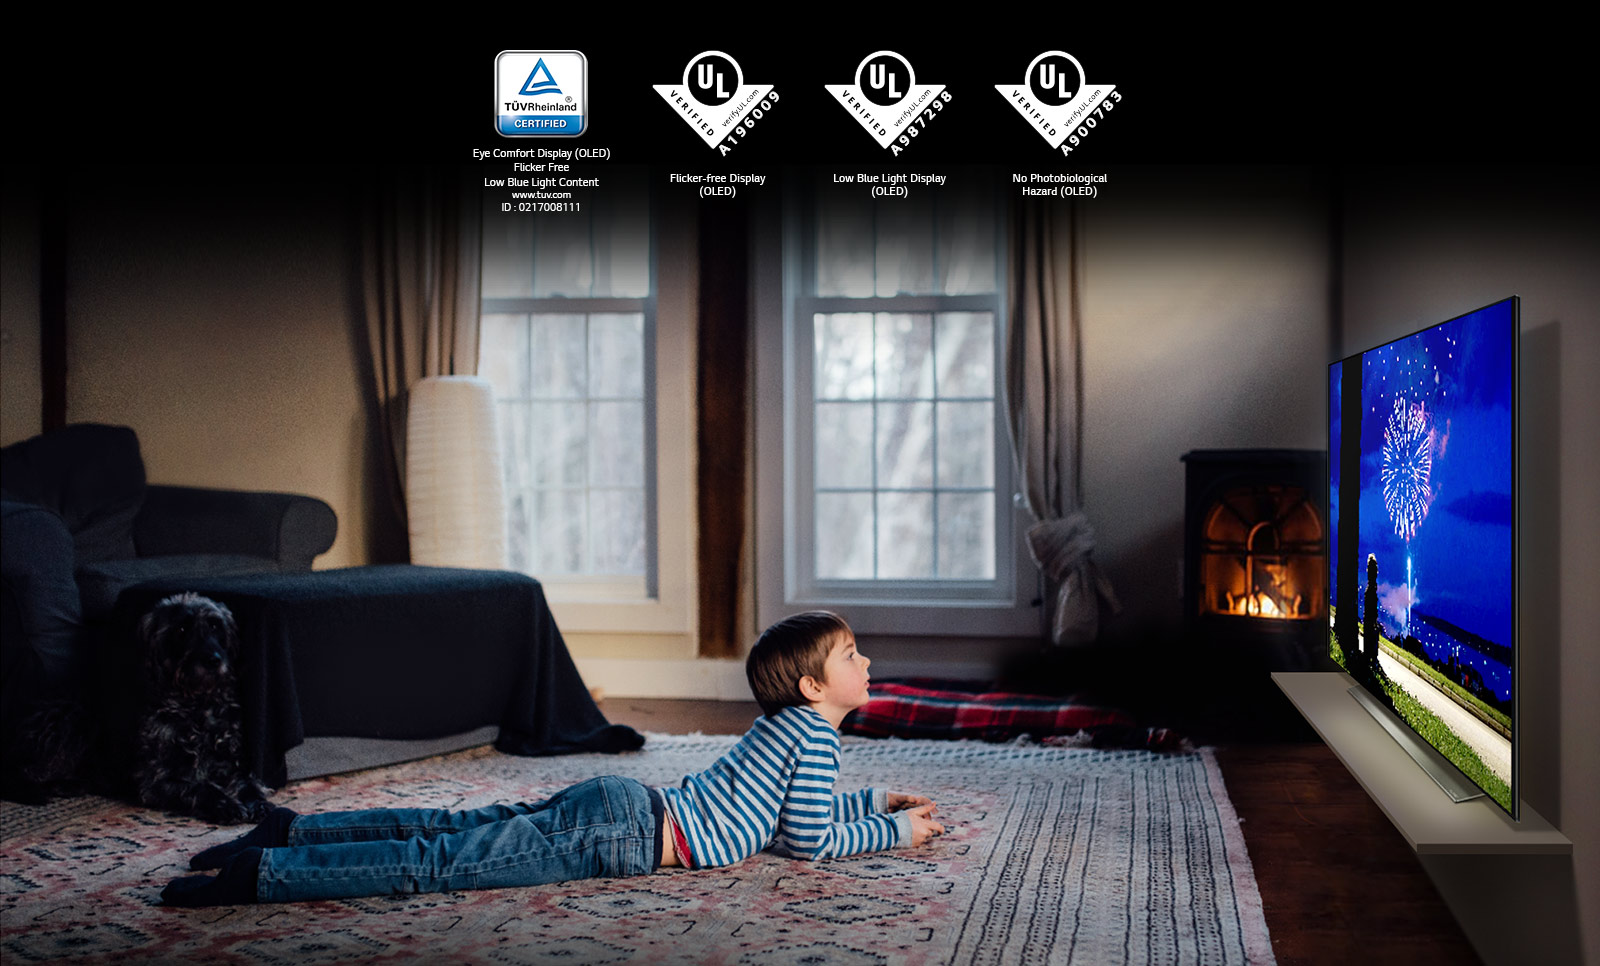 """This is the card describing the """"Eye Comfort Display"""". This is a scene of a boy watching TV in a prone position. Four logos have been placed for """"Eye Comfort Display"""" certification."""